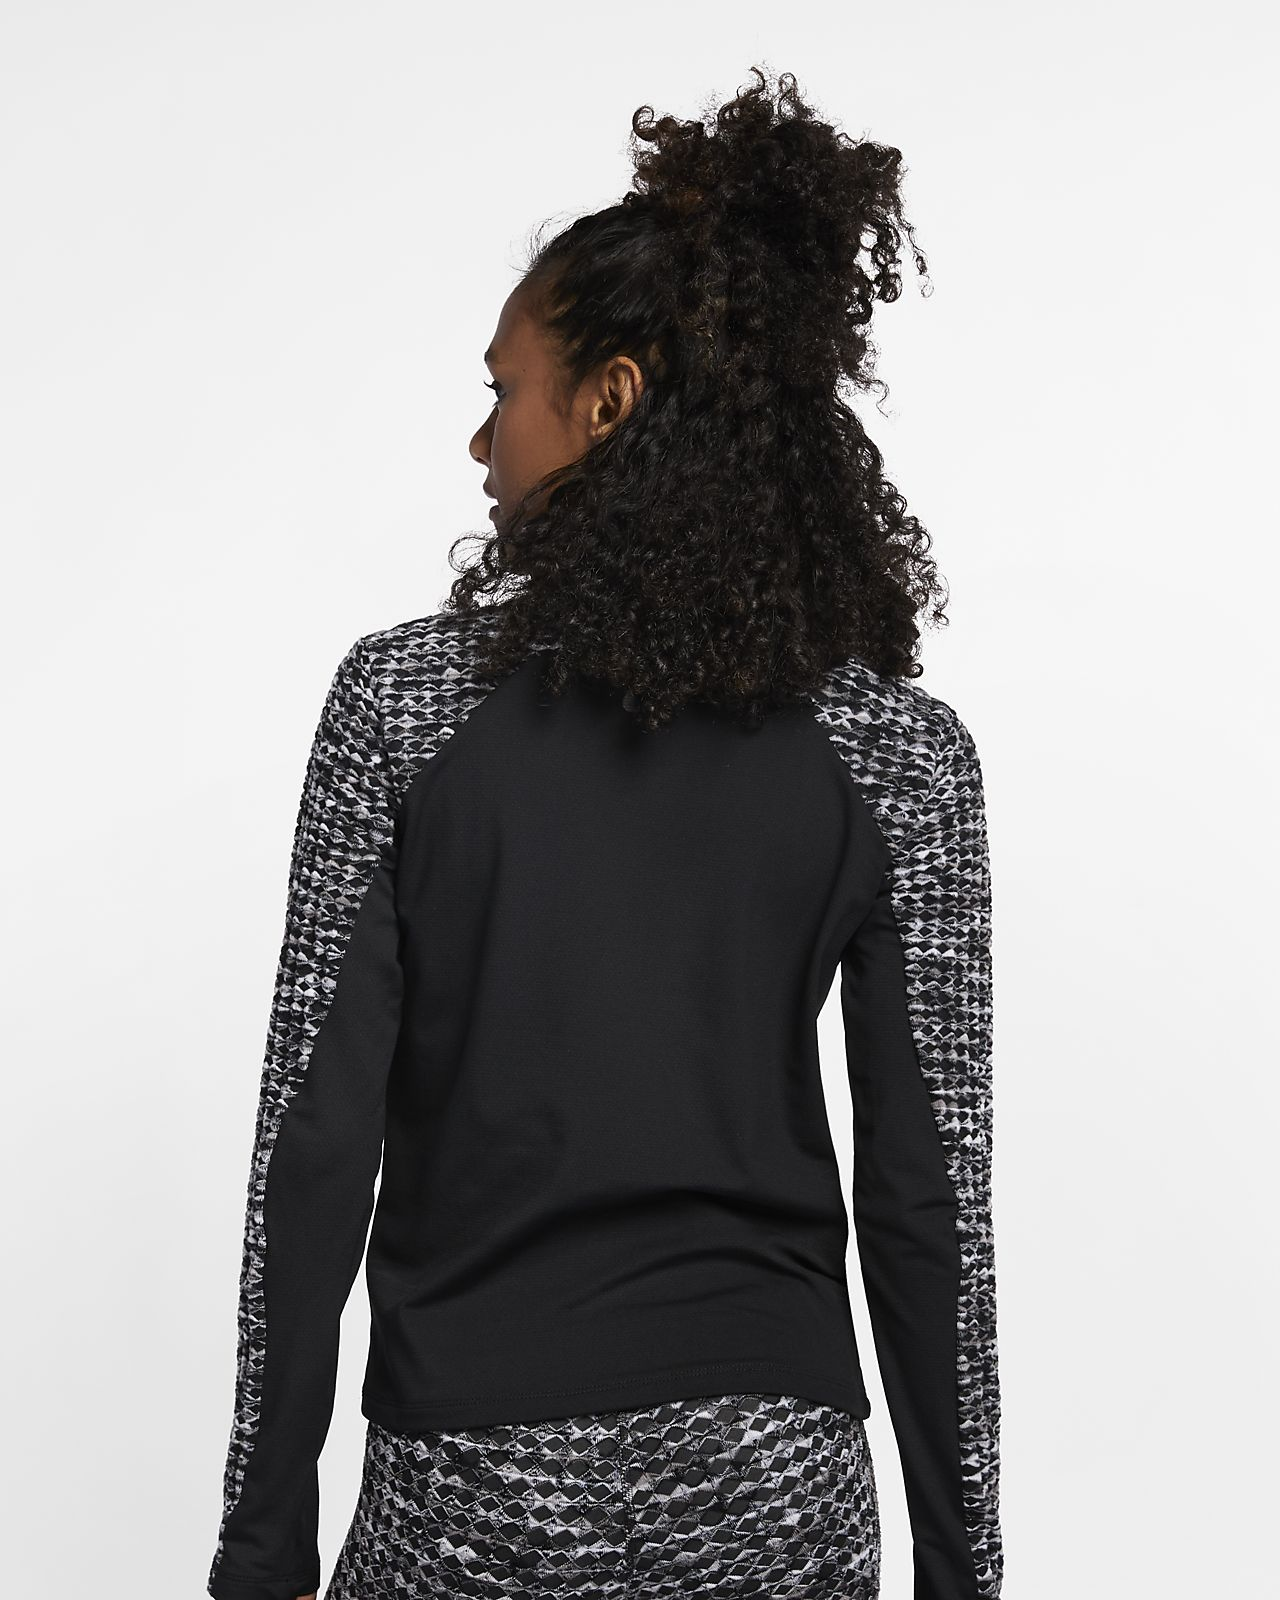 Nike Pro HyperWarm Women's Long Sleeve Top